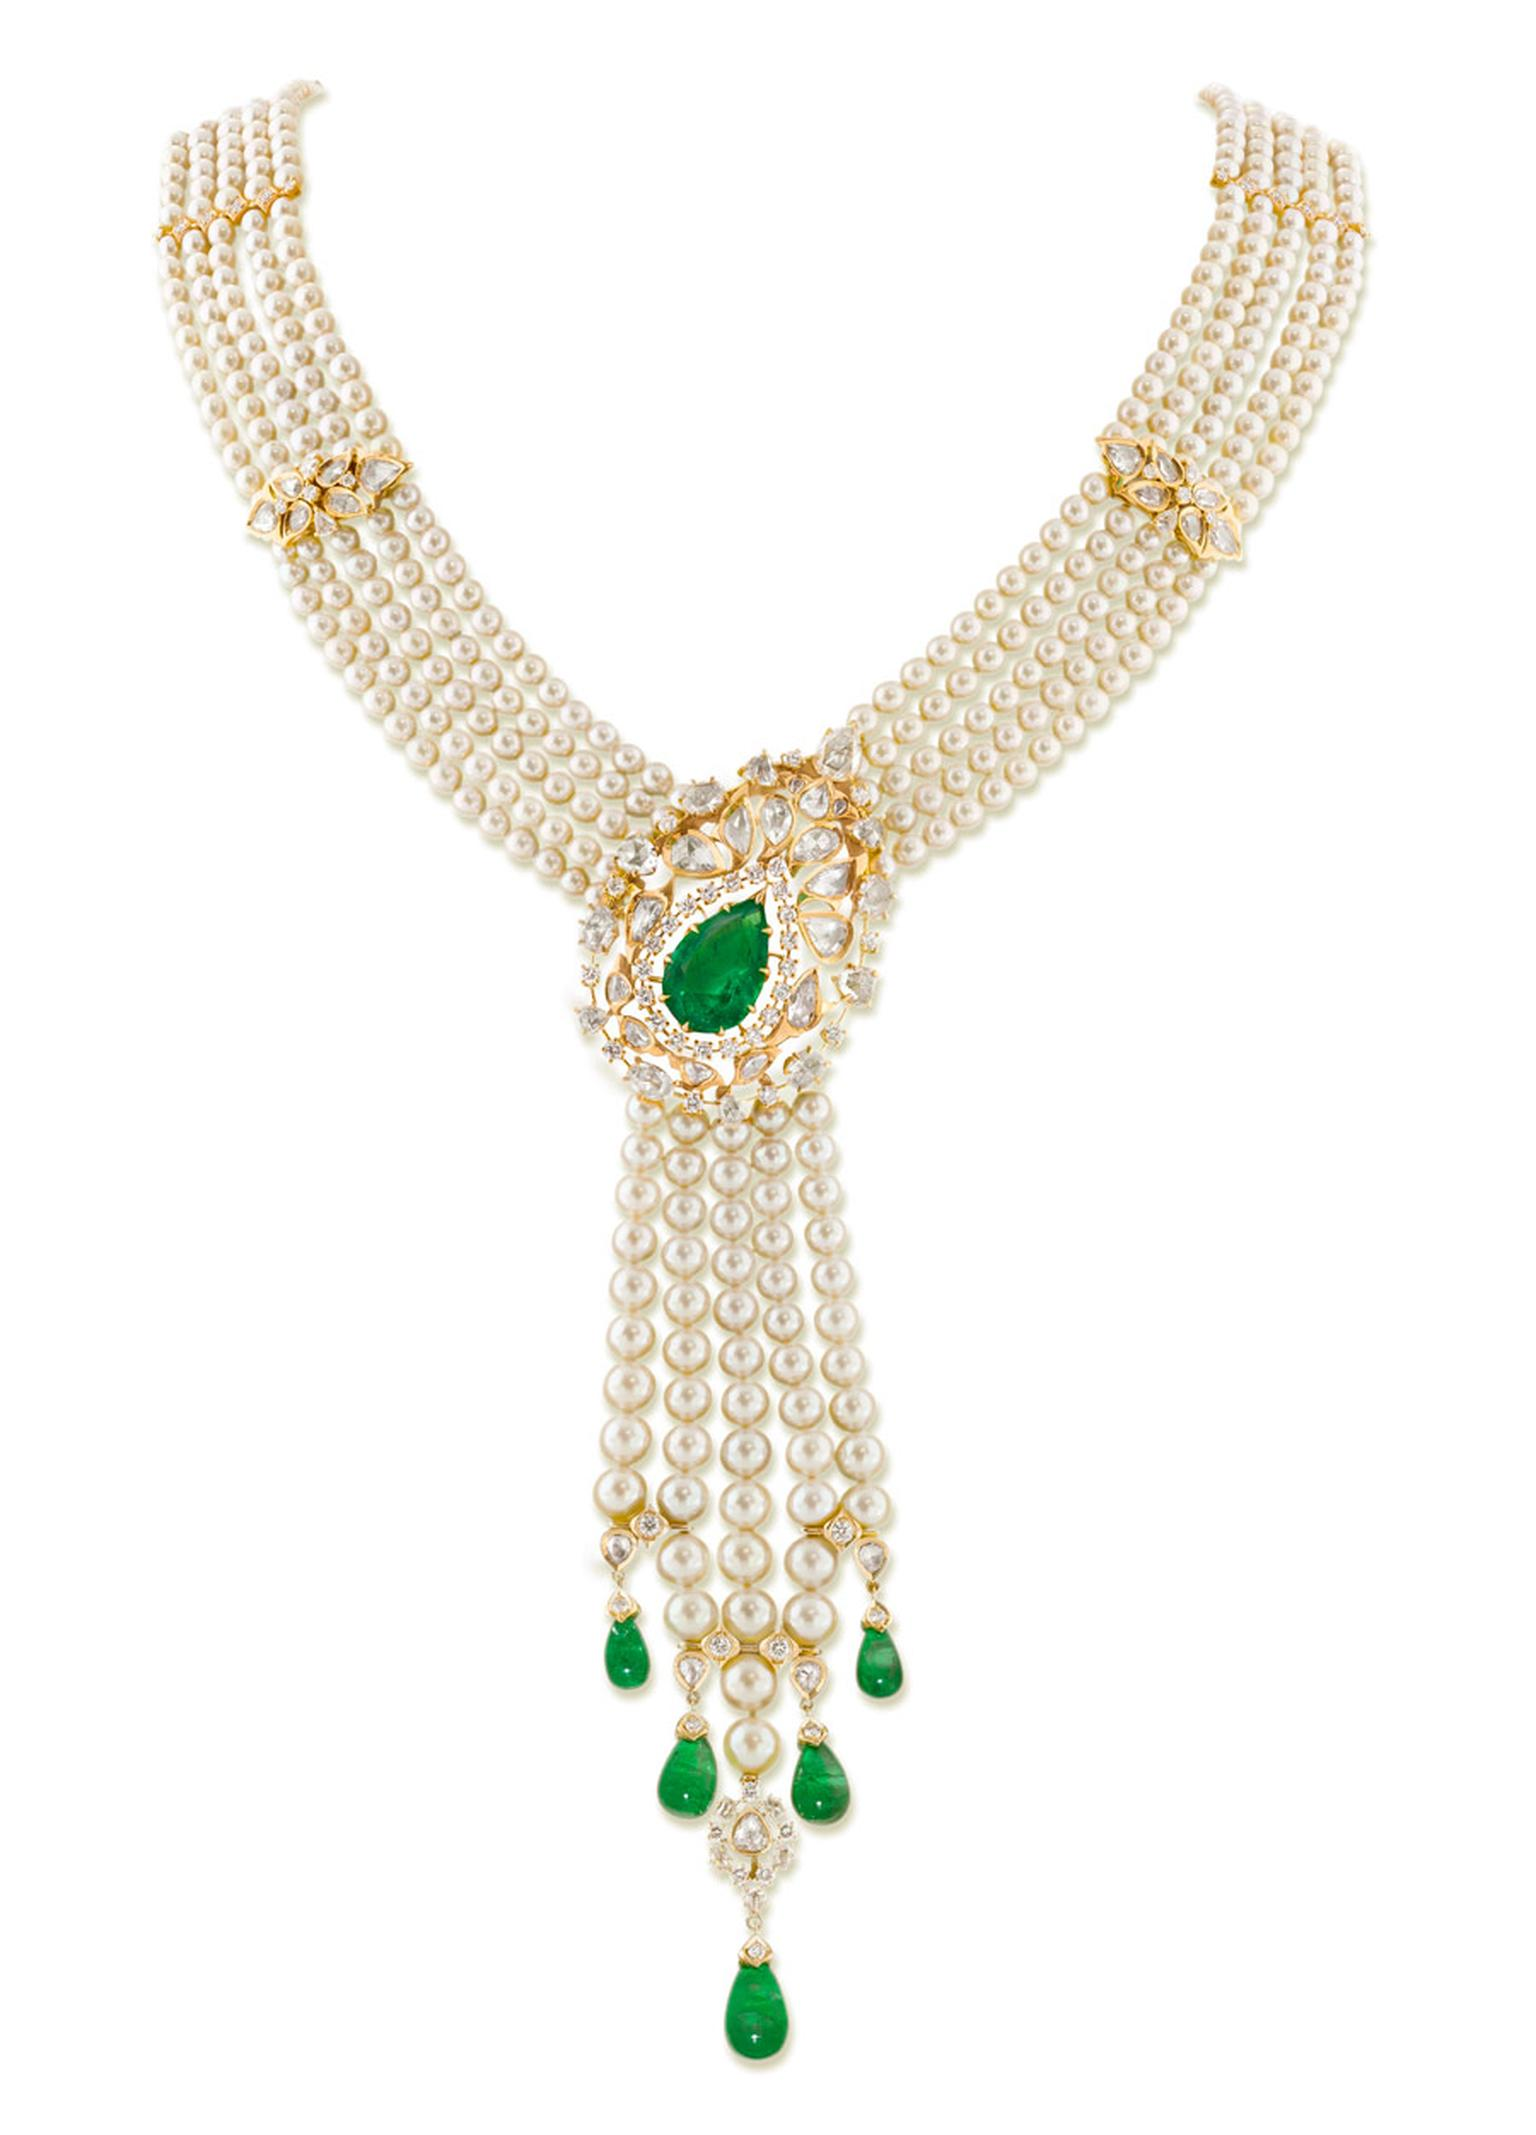 Necklace---Nizam-collection-Ganjam